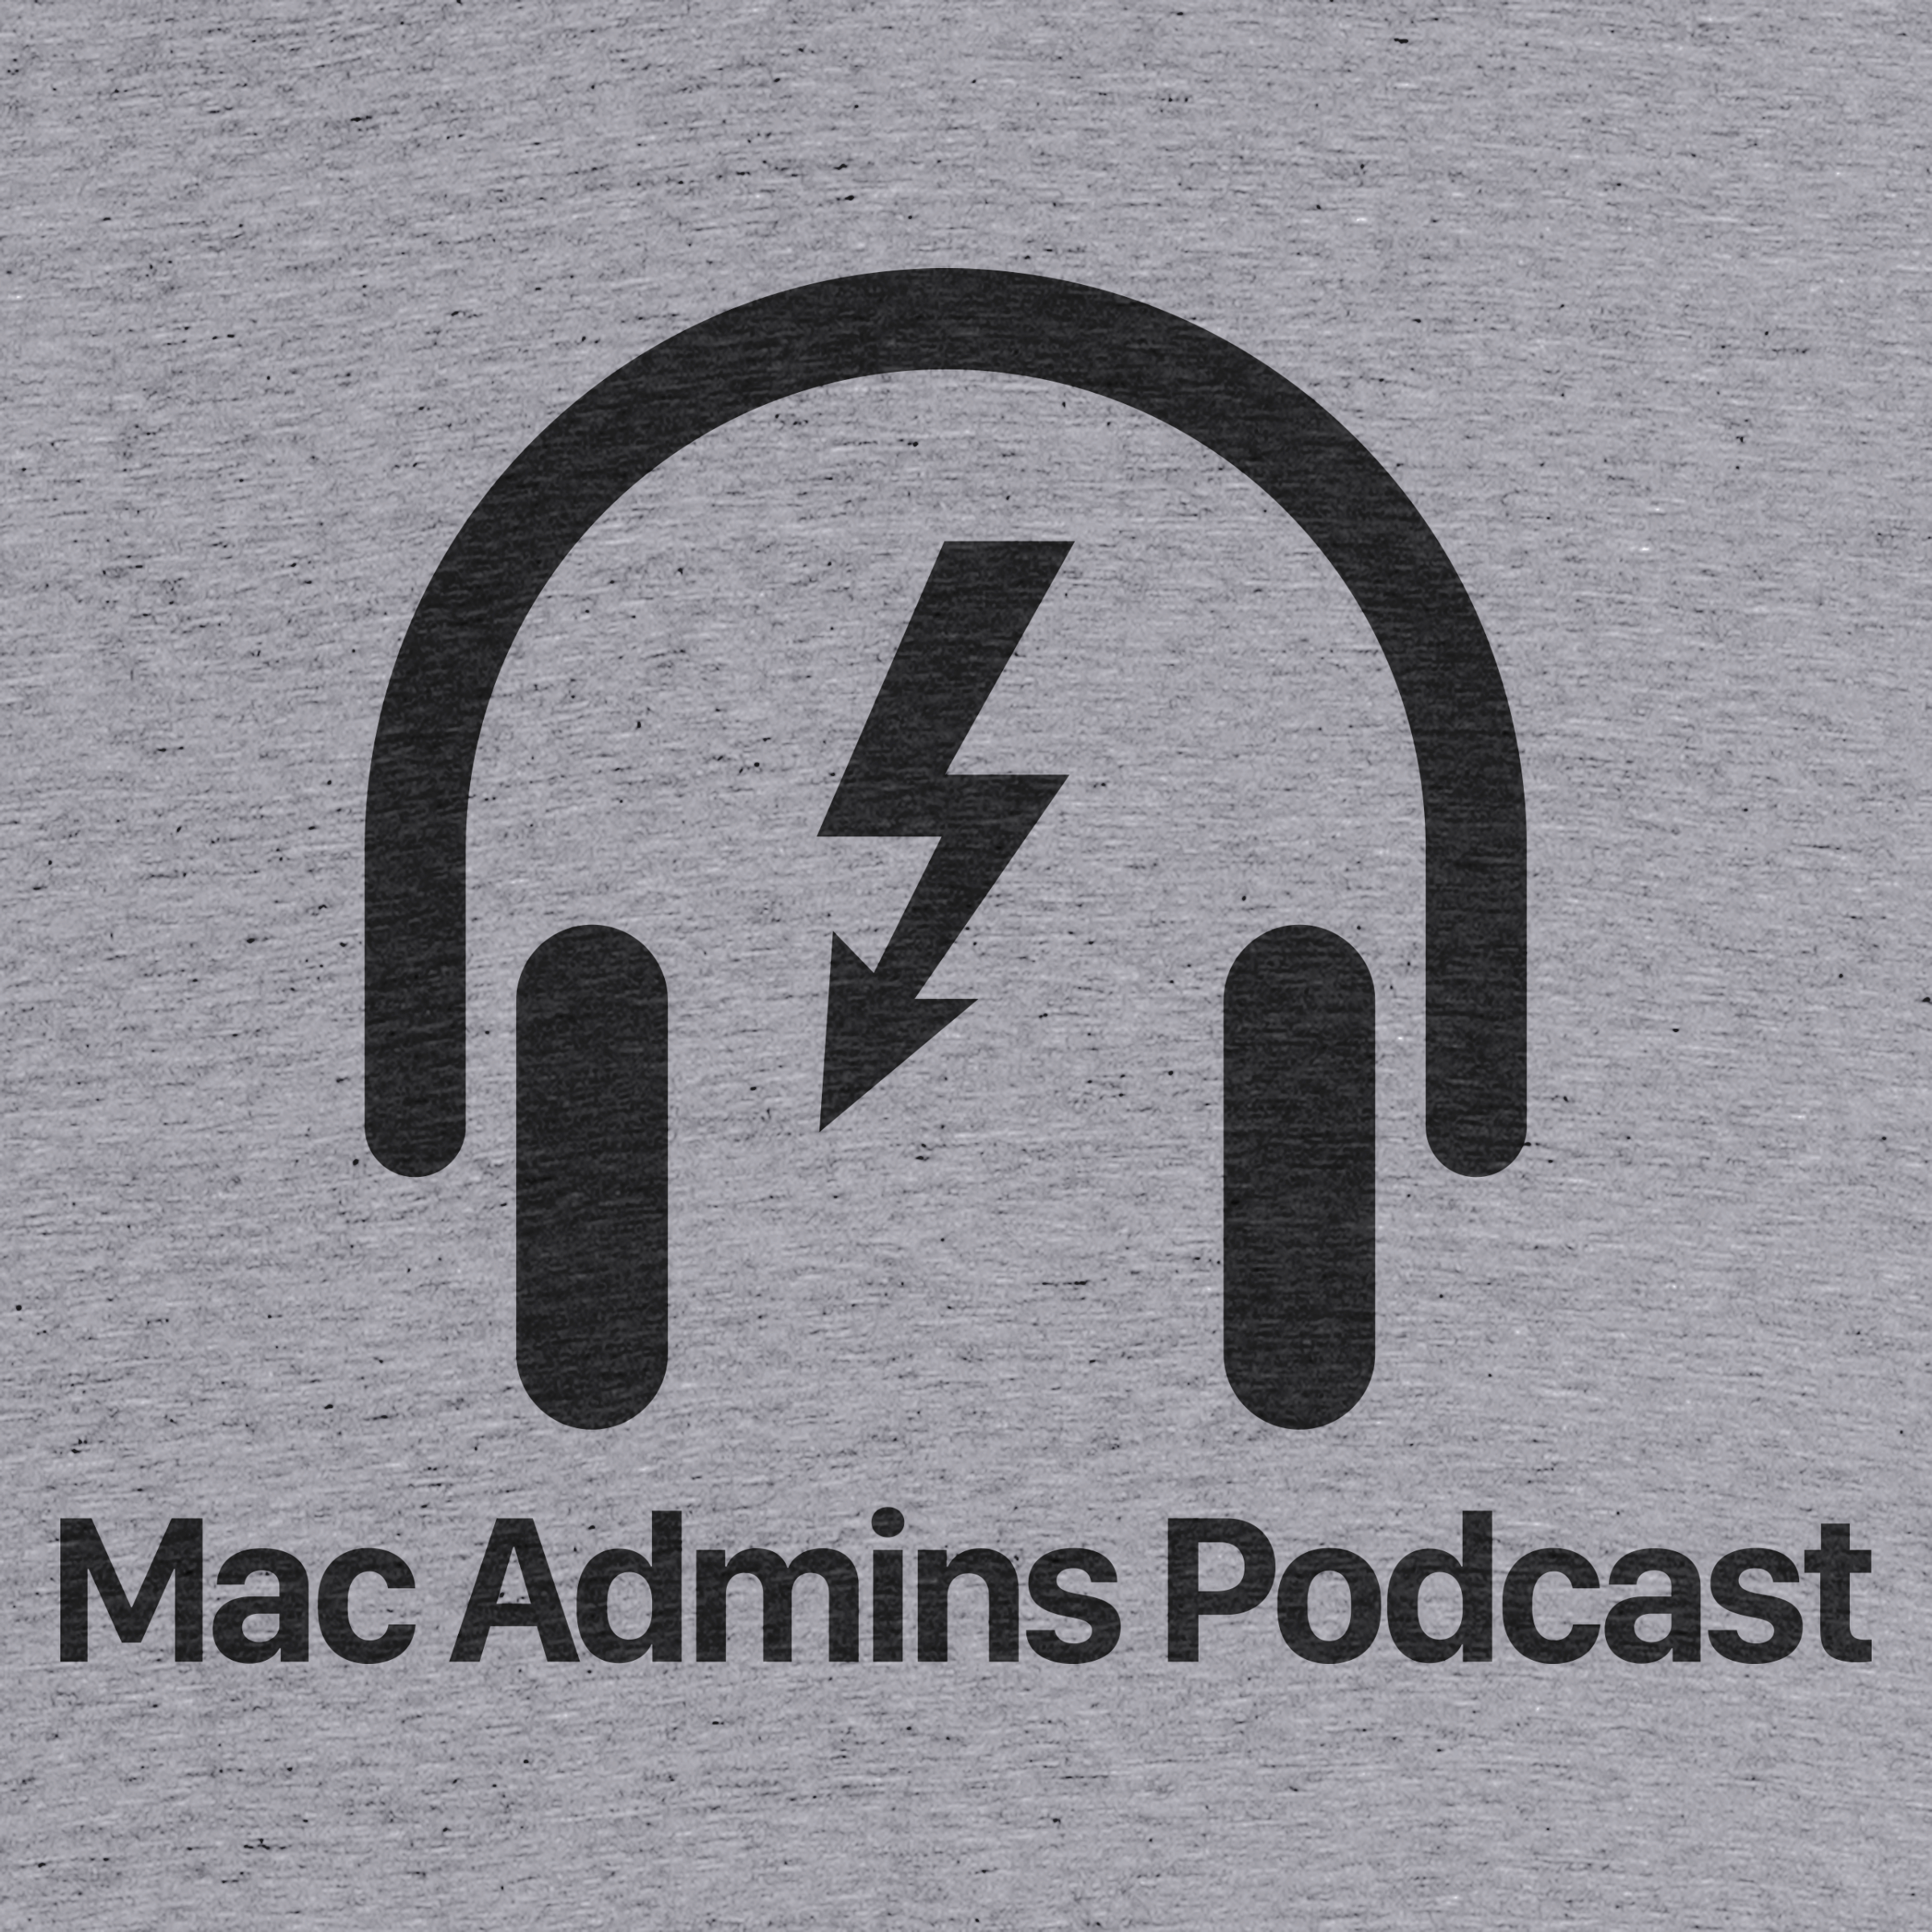 Mac Admins Podcast Detail